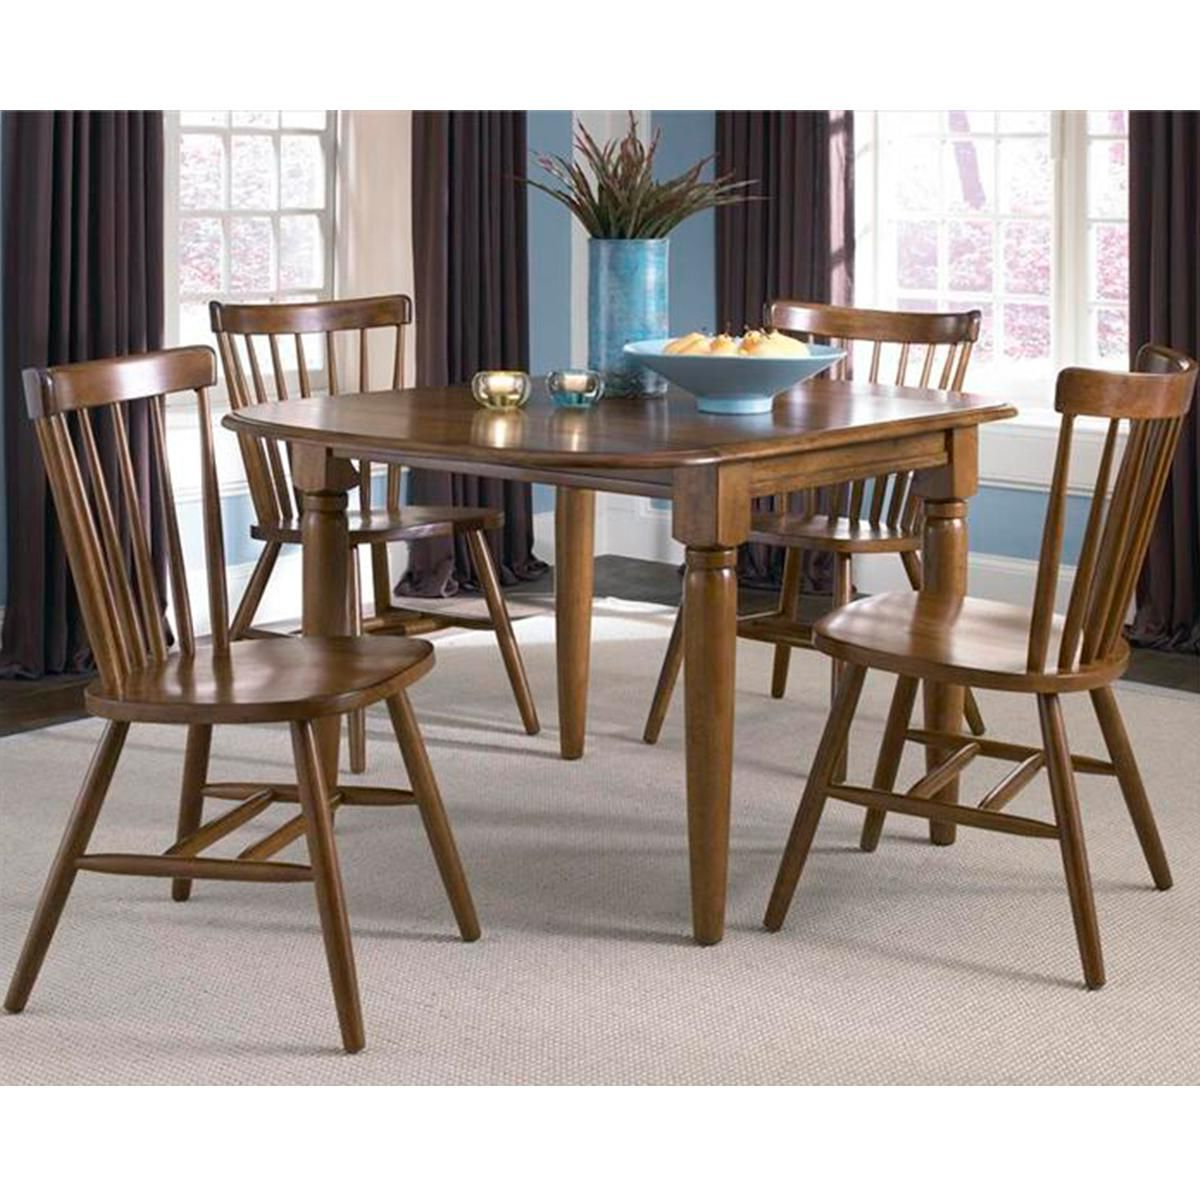 Fashionable Creations Ii Drop Leaf Table In Tobacco – Table Only With Transitional 4 Seating Double Drop Leaf Casual Dining Tables (View 5 of 30)